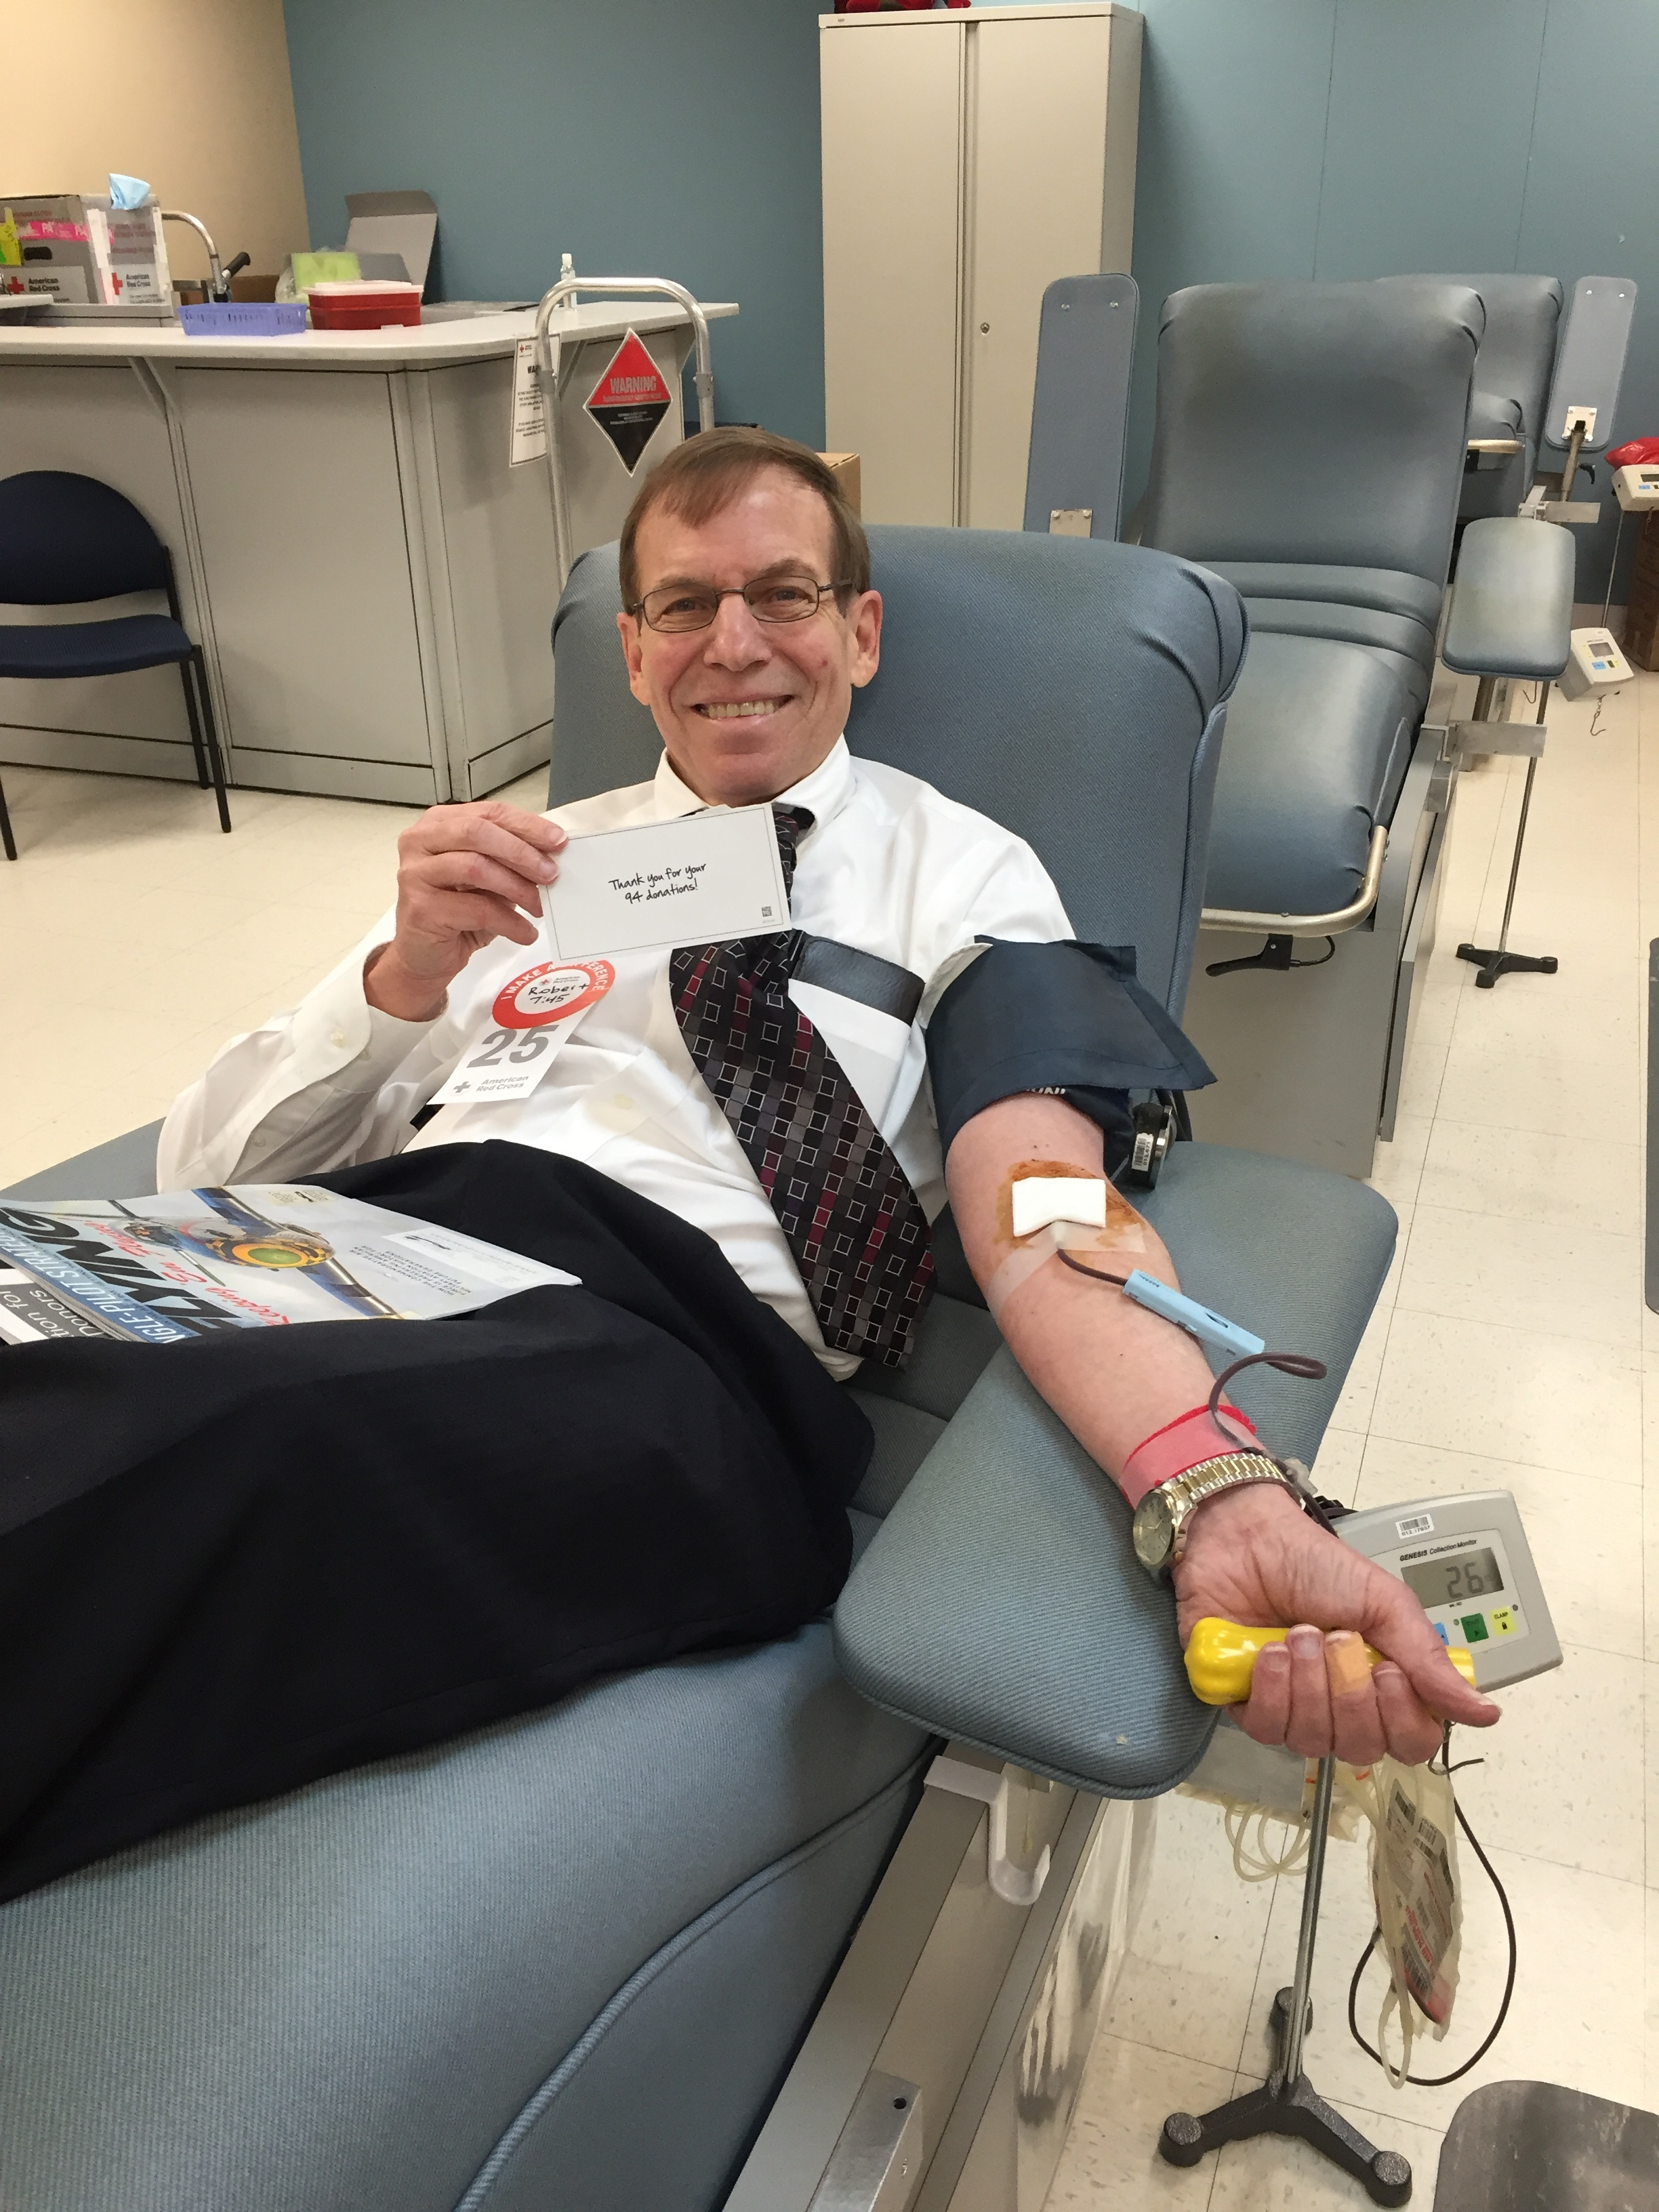 Justice Edmunds is a frequent blood donor—this is a shot of his 95th blood donation since arriving in Raleigh in 1999 on April 21, 2016.